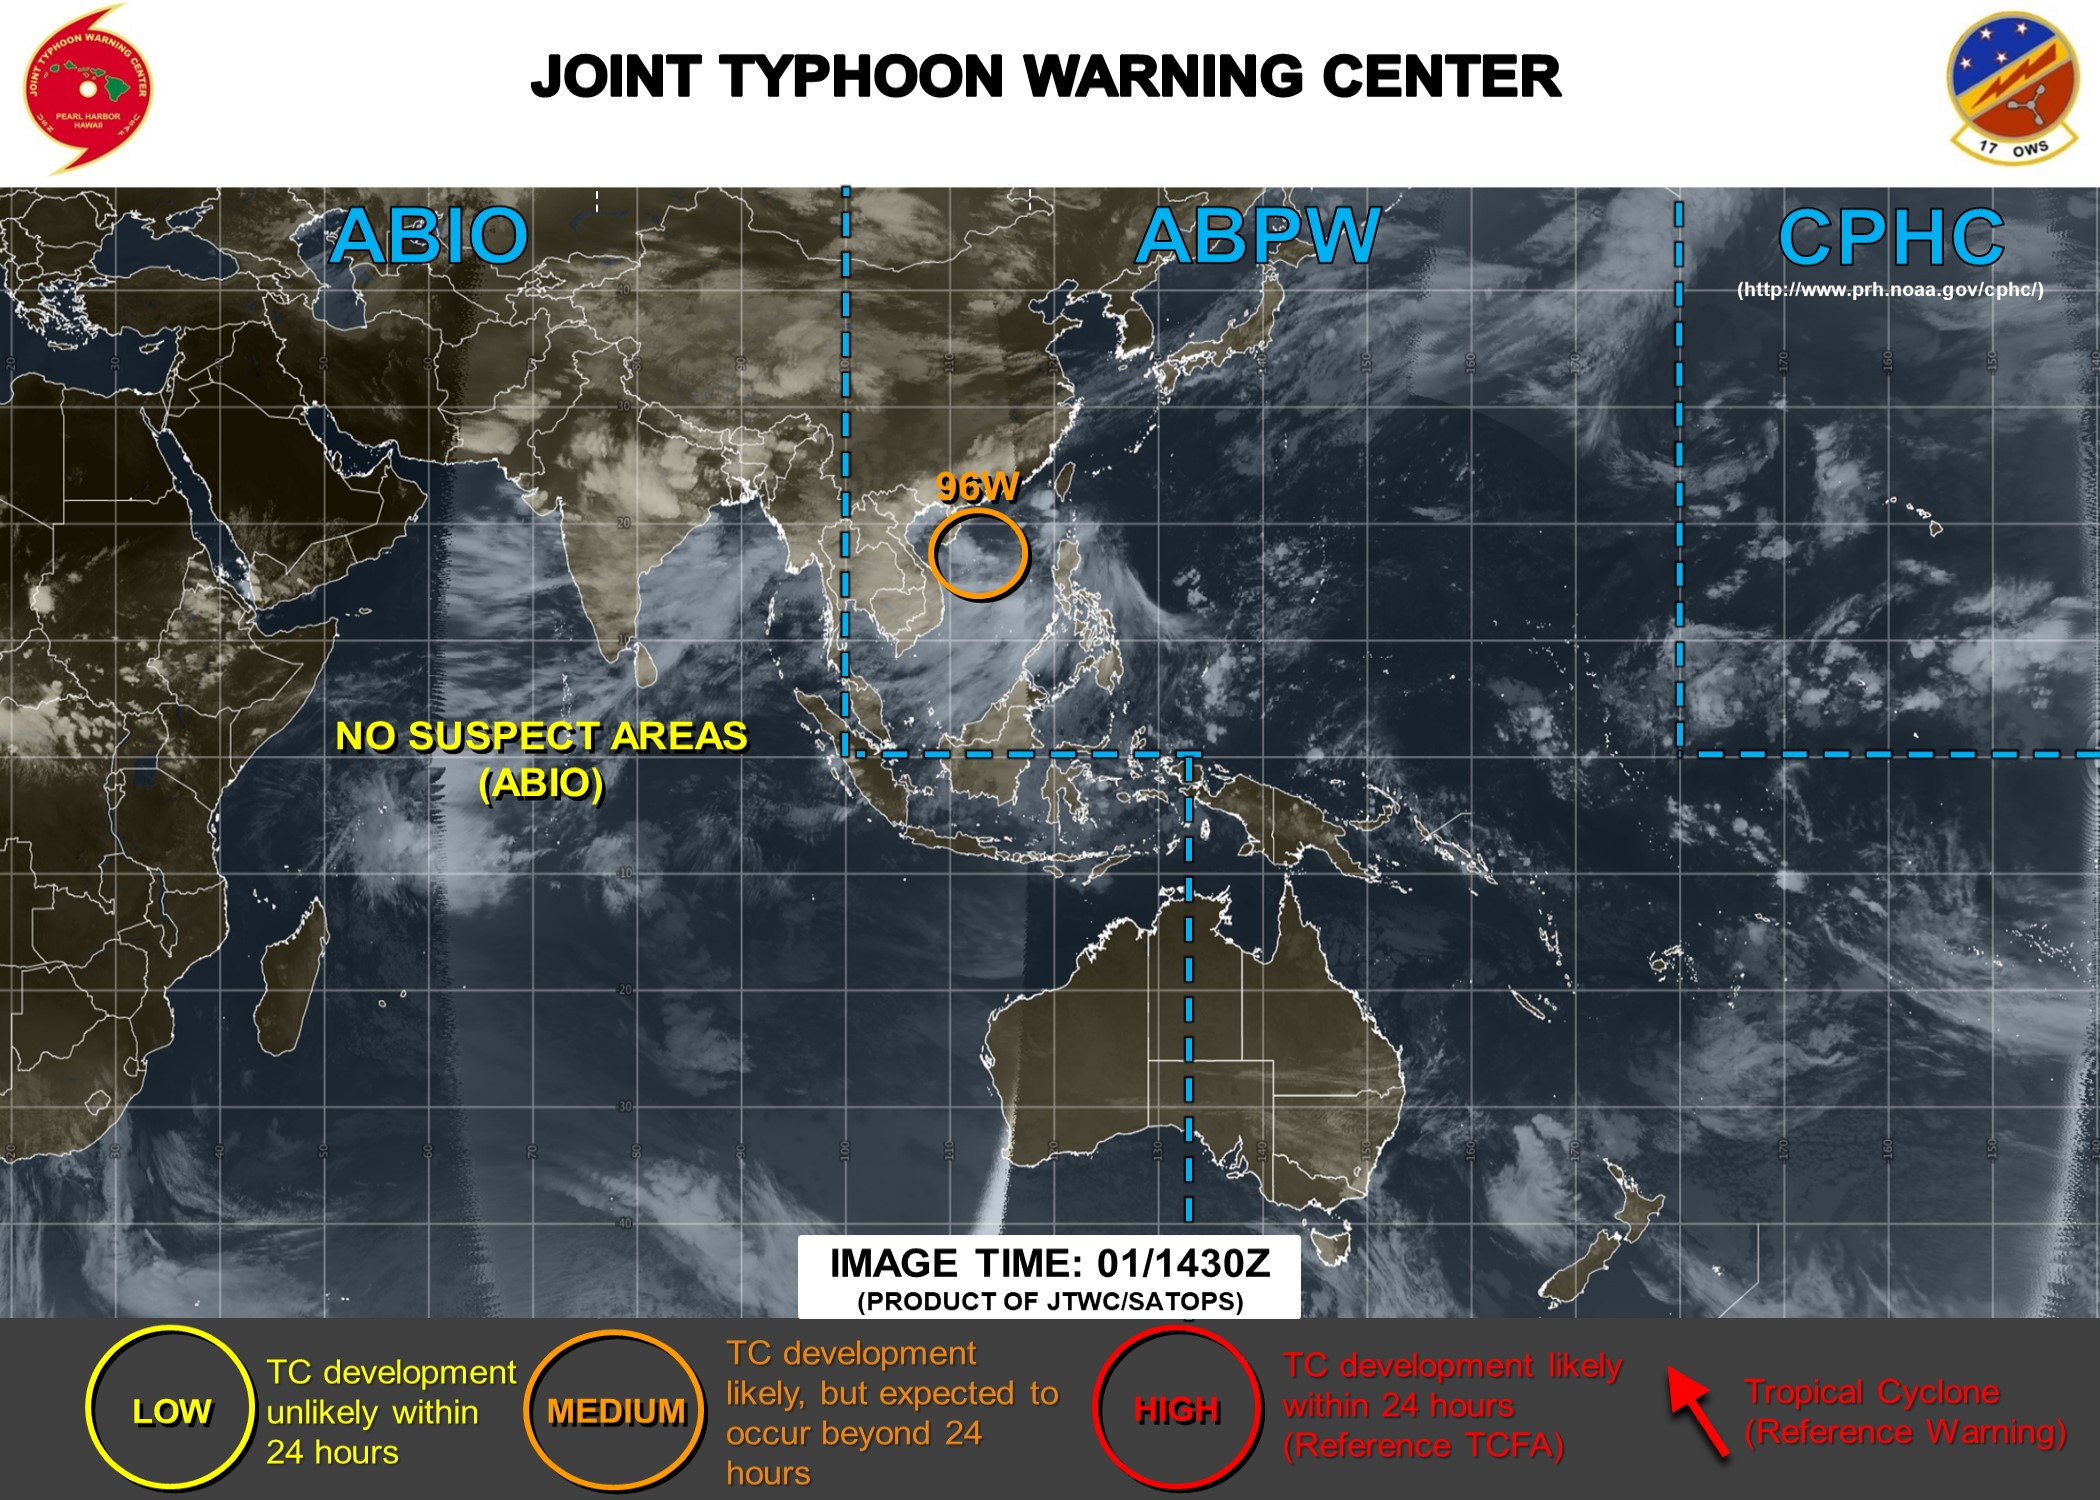 South China Sea: INVEST 96W now upgraded to MEDIUM